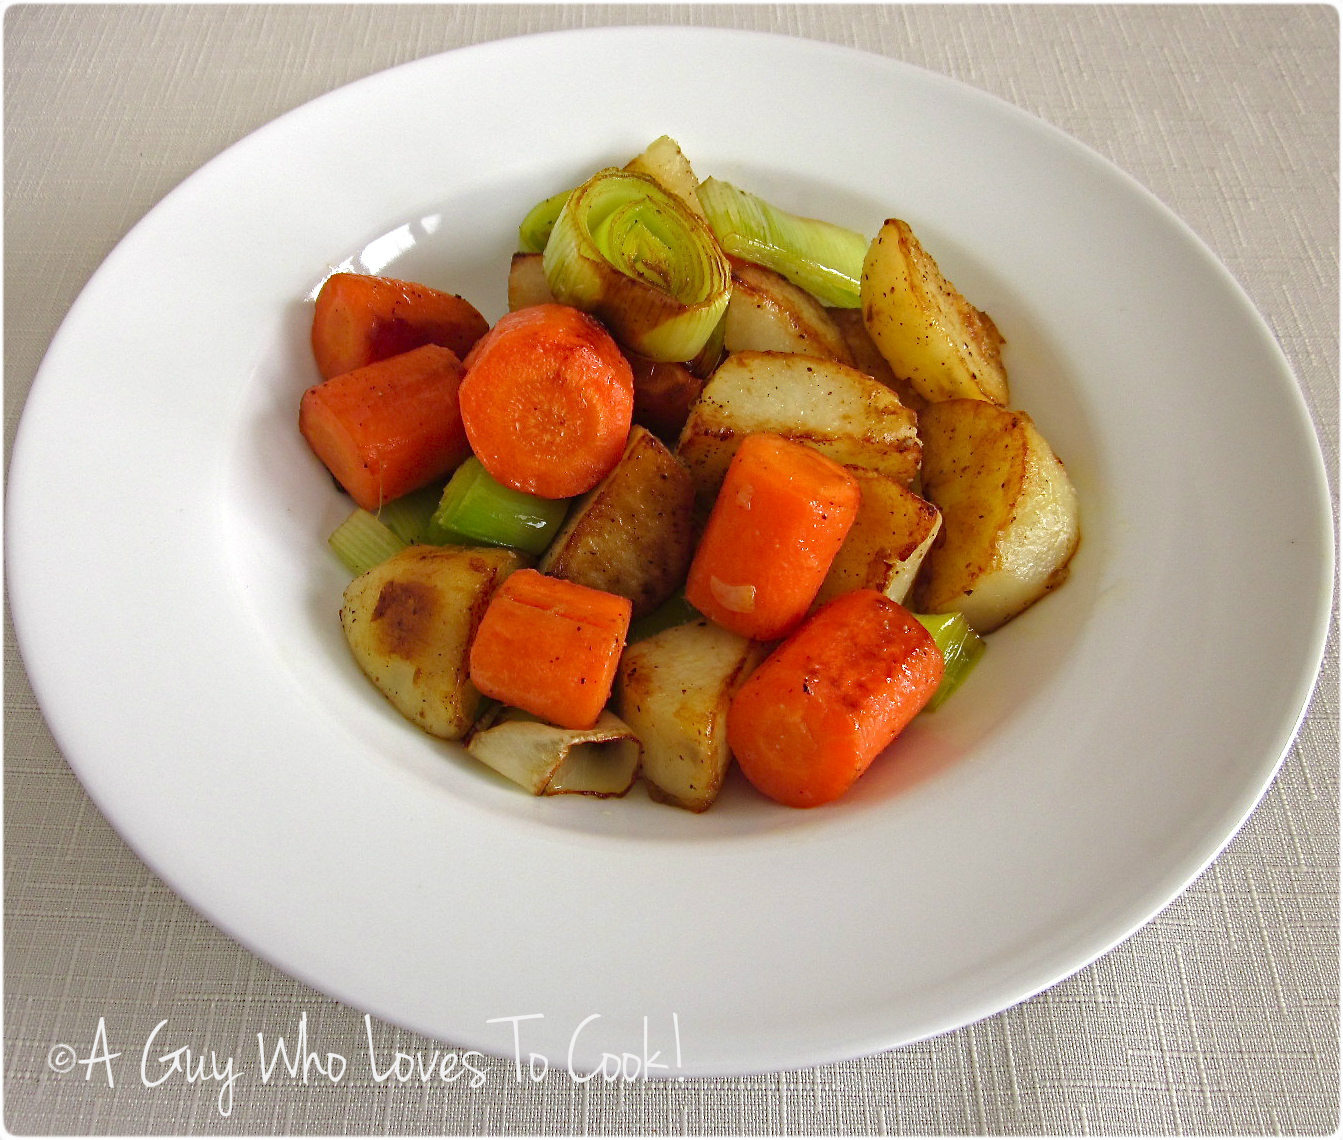 Stovetop Roasted Root Vegetables